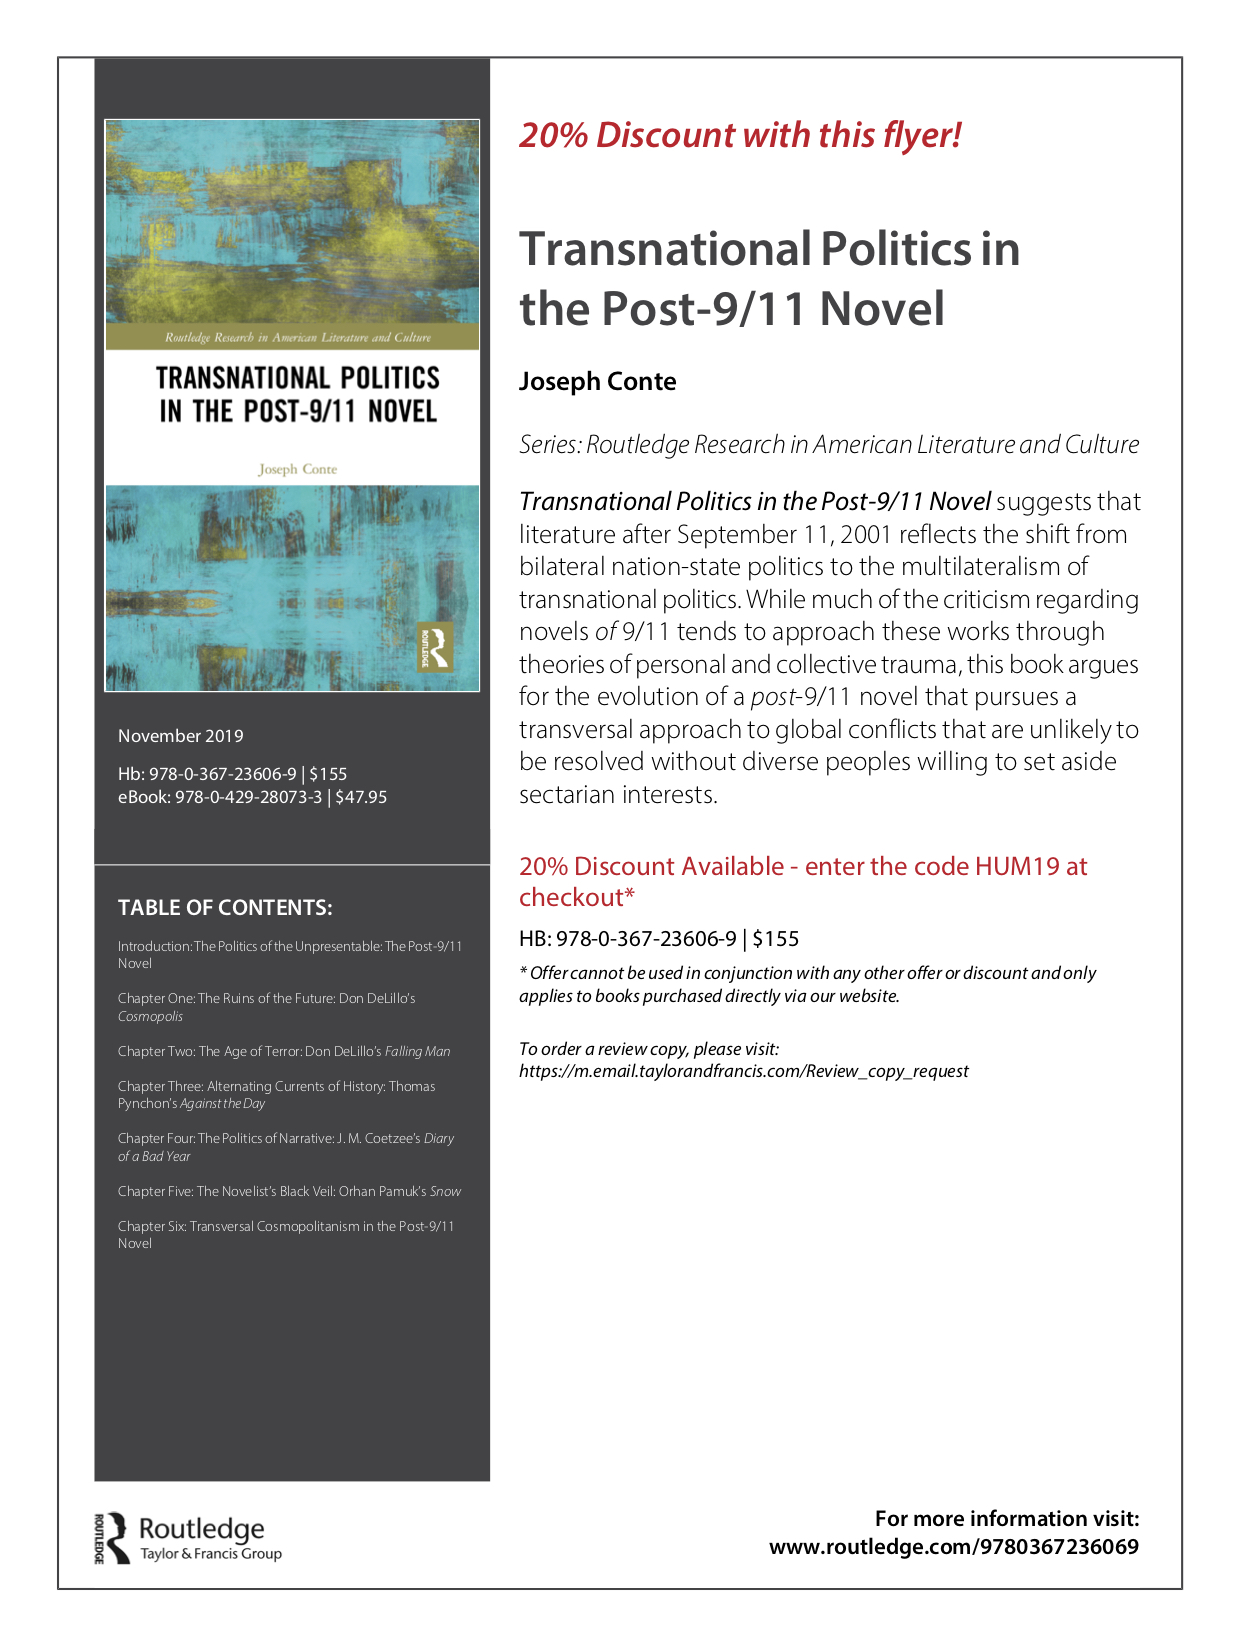 Transnational Politics in the Post-911 Novel